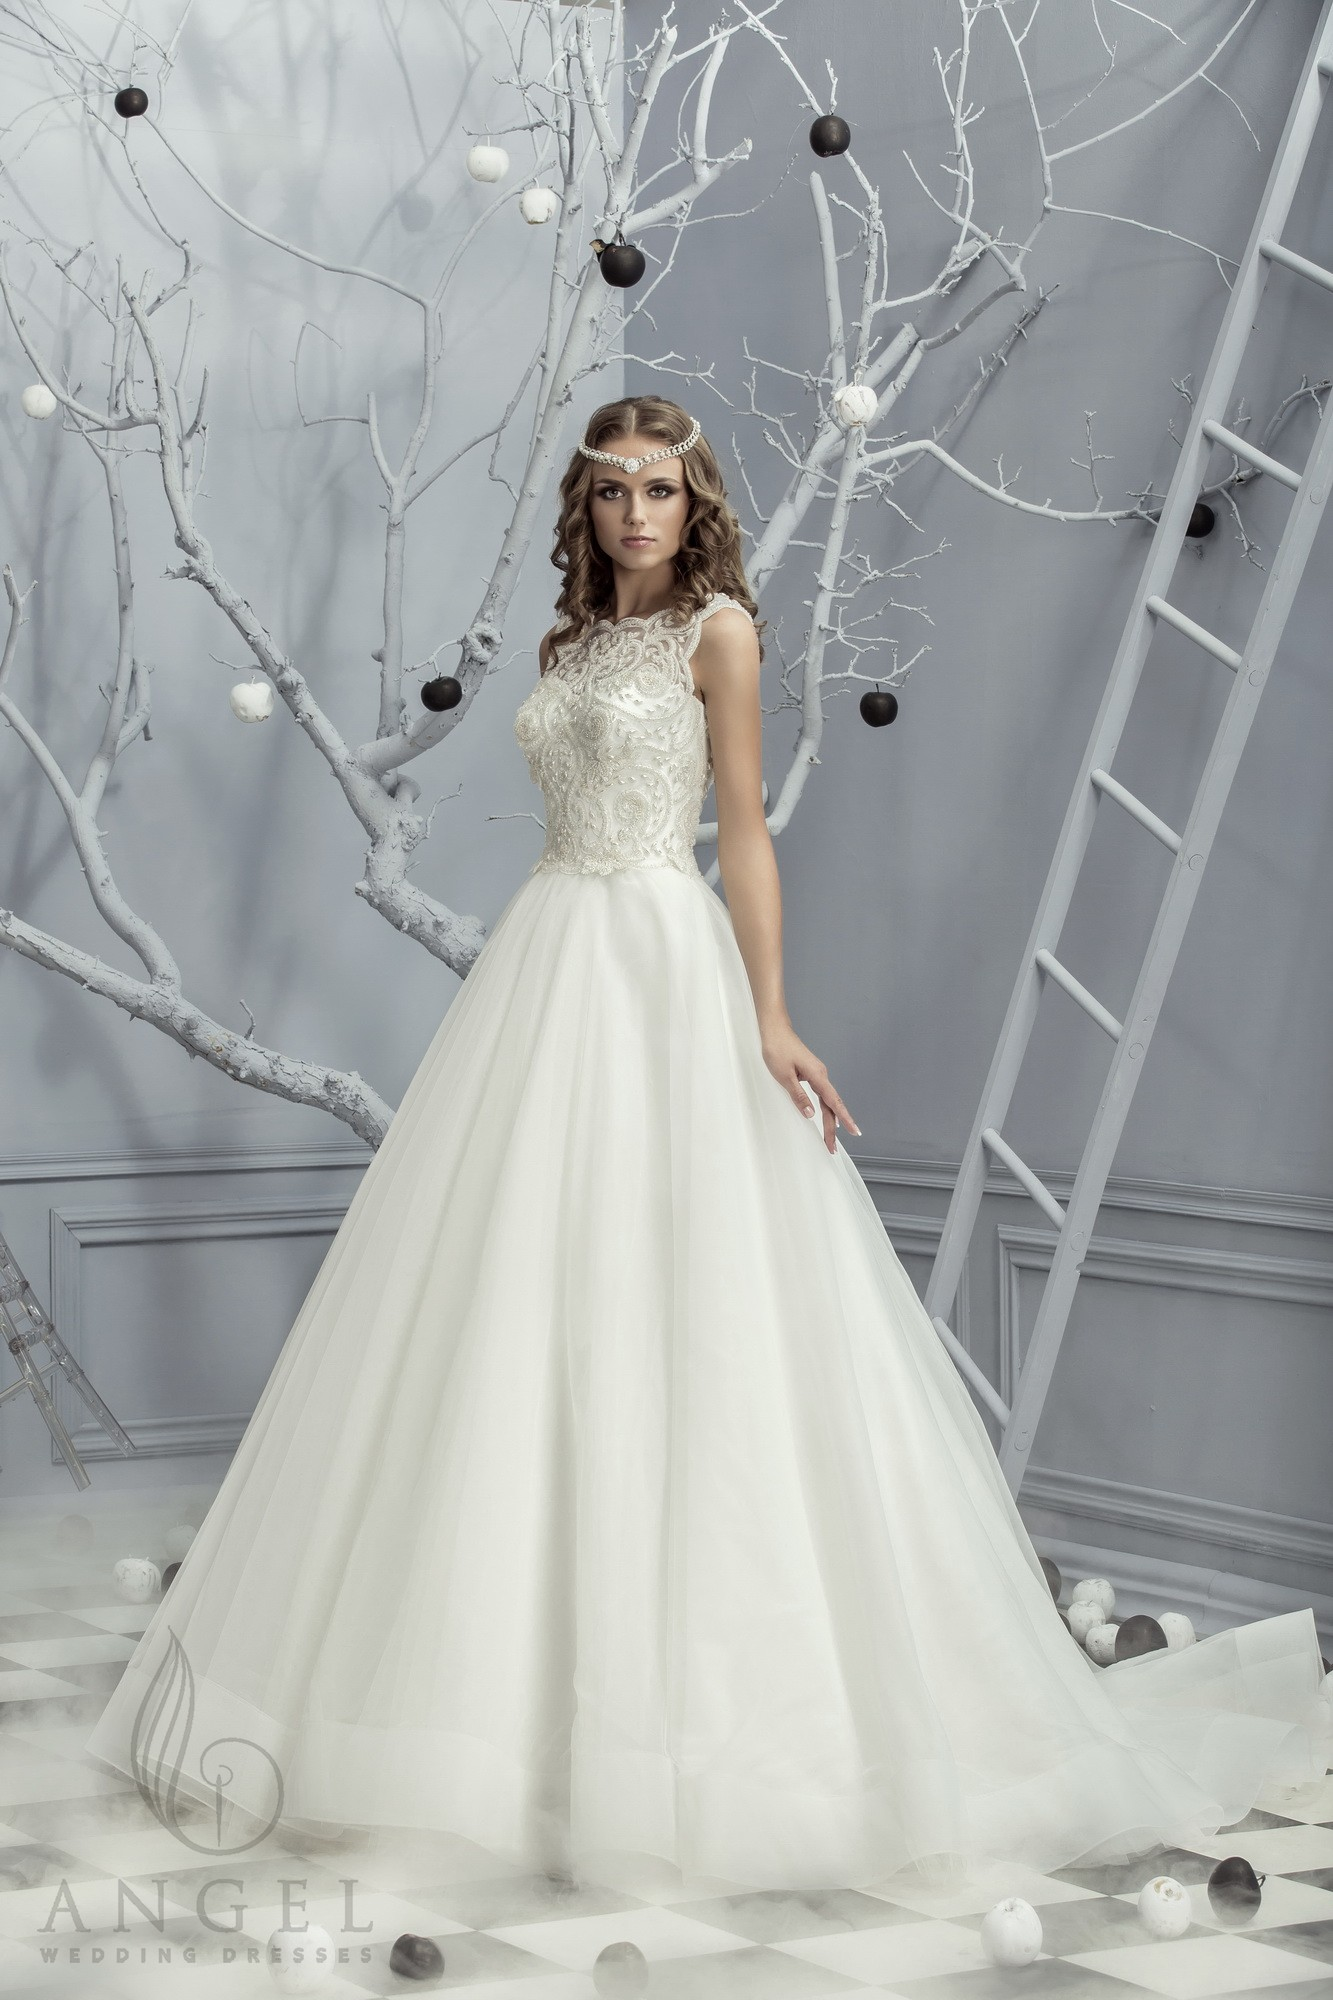 https://angel-novias.com/images/stories/virtuemart/product/Cassandra.jpg